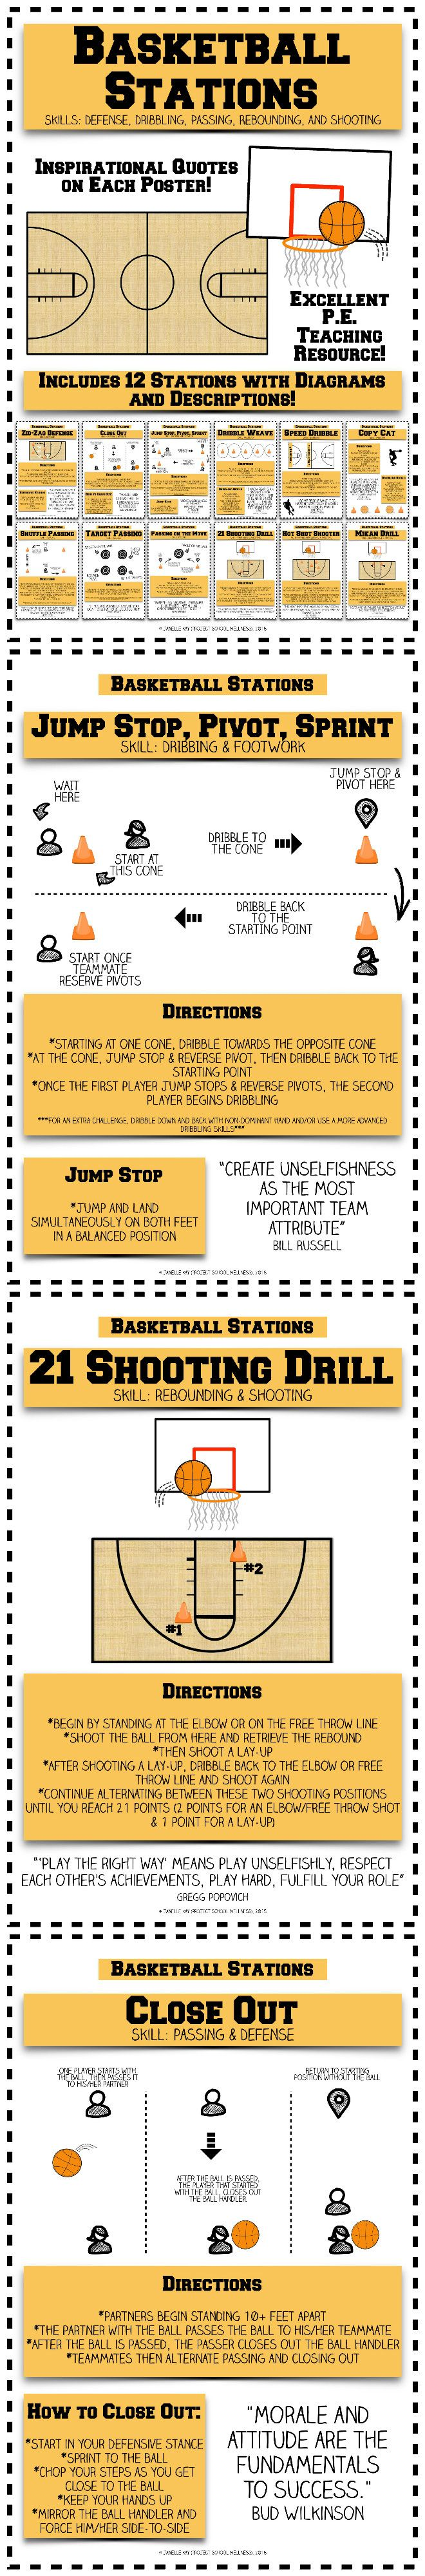 Basketball Stations - PE Stations - PE Resources                                                                                                                                                                                 More